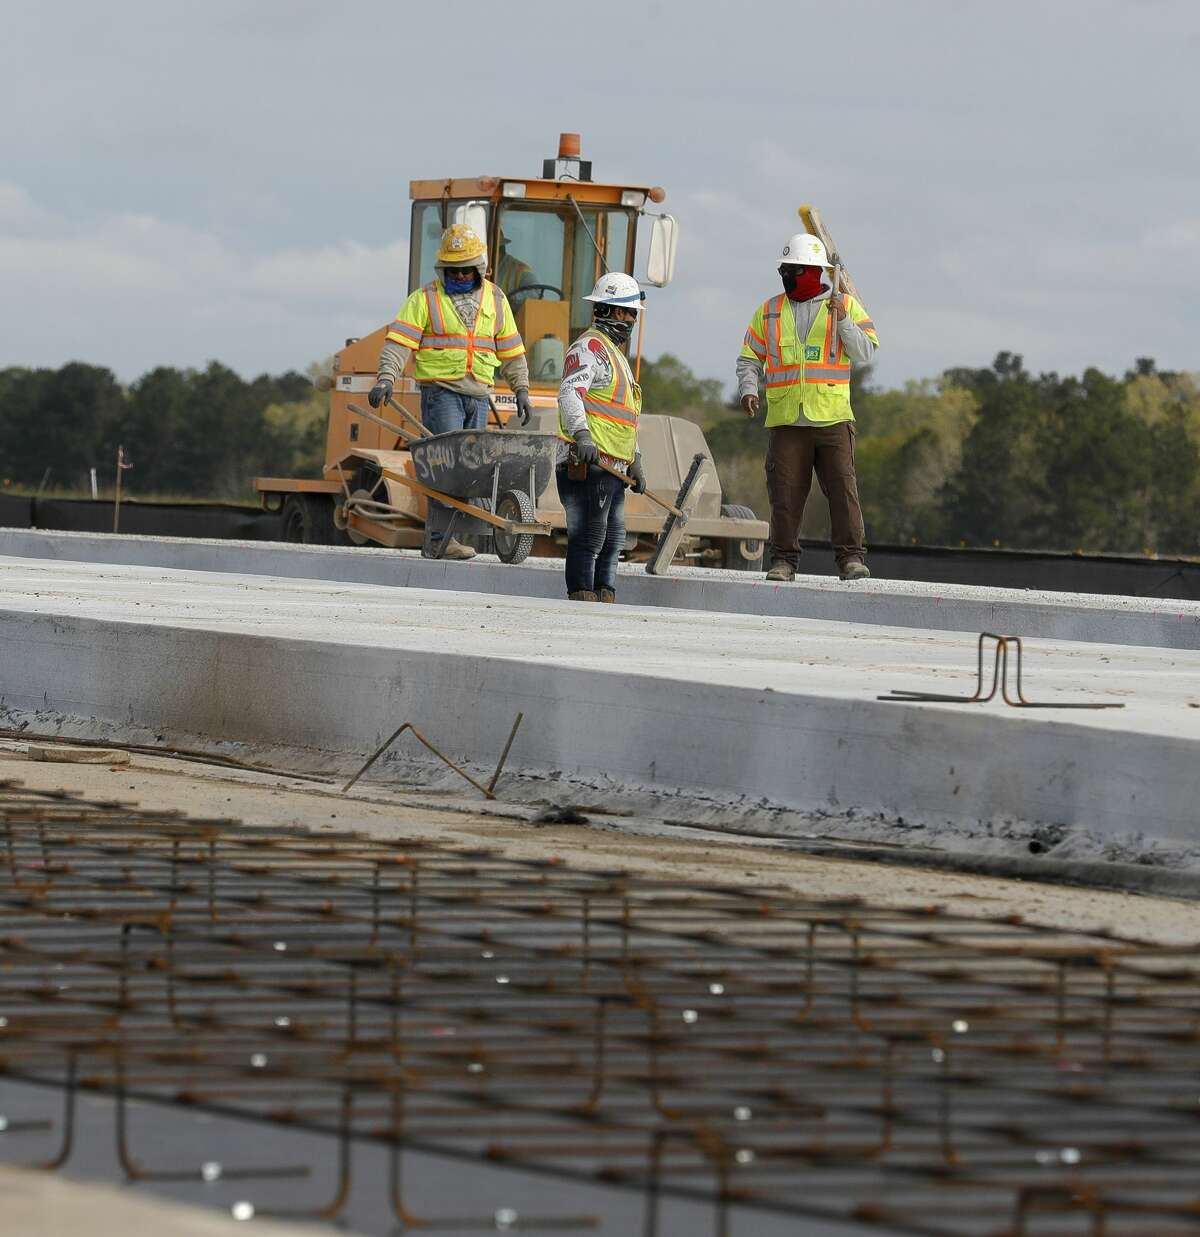 Reconstruction continues on taxiway at Conroe-North Houston Regional Airport, Thursday, March 25, 2021, in Conroe. Since 2011, operations at the airport have increased 50 percent, according to Airport Director James Brown.